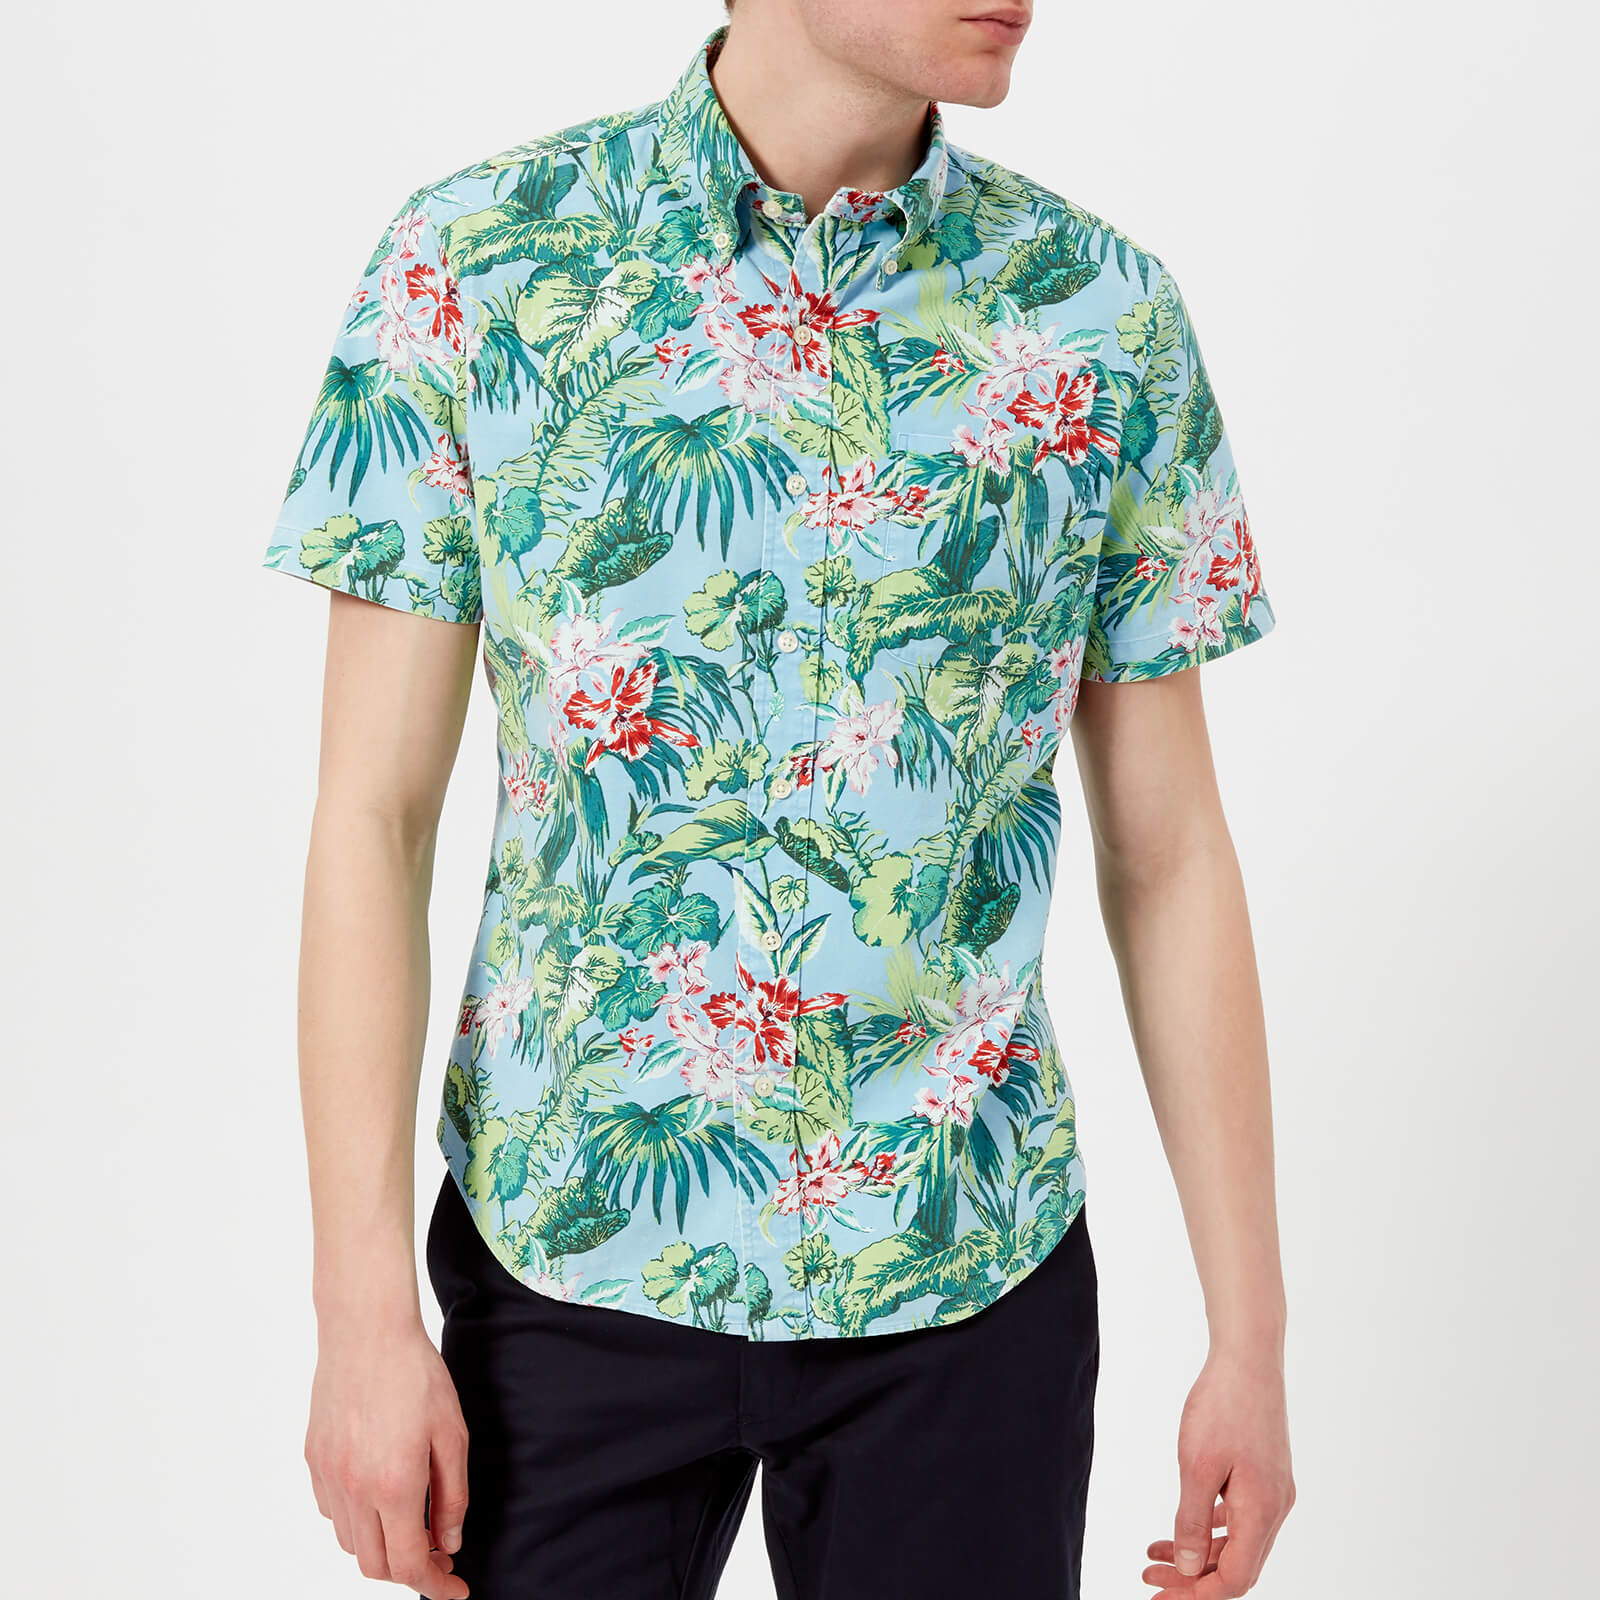 5f1aa550 Polo Ralph Lauren Men's Short Sleeve Palm Floral Shirt - Blue - Free UK  Delivery over £50